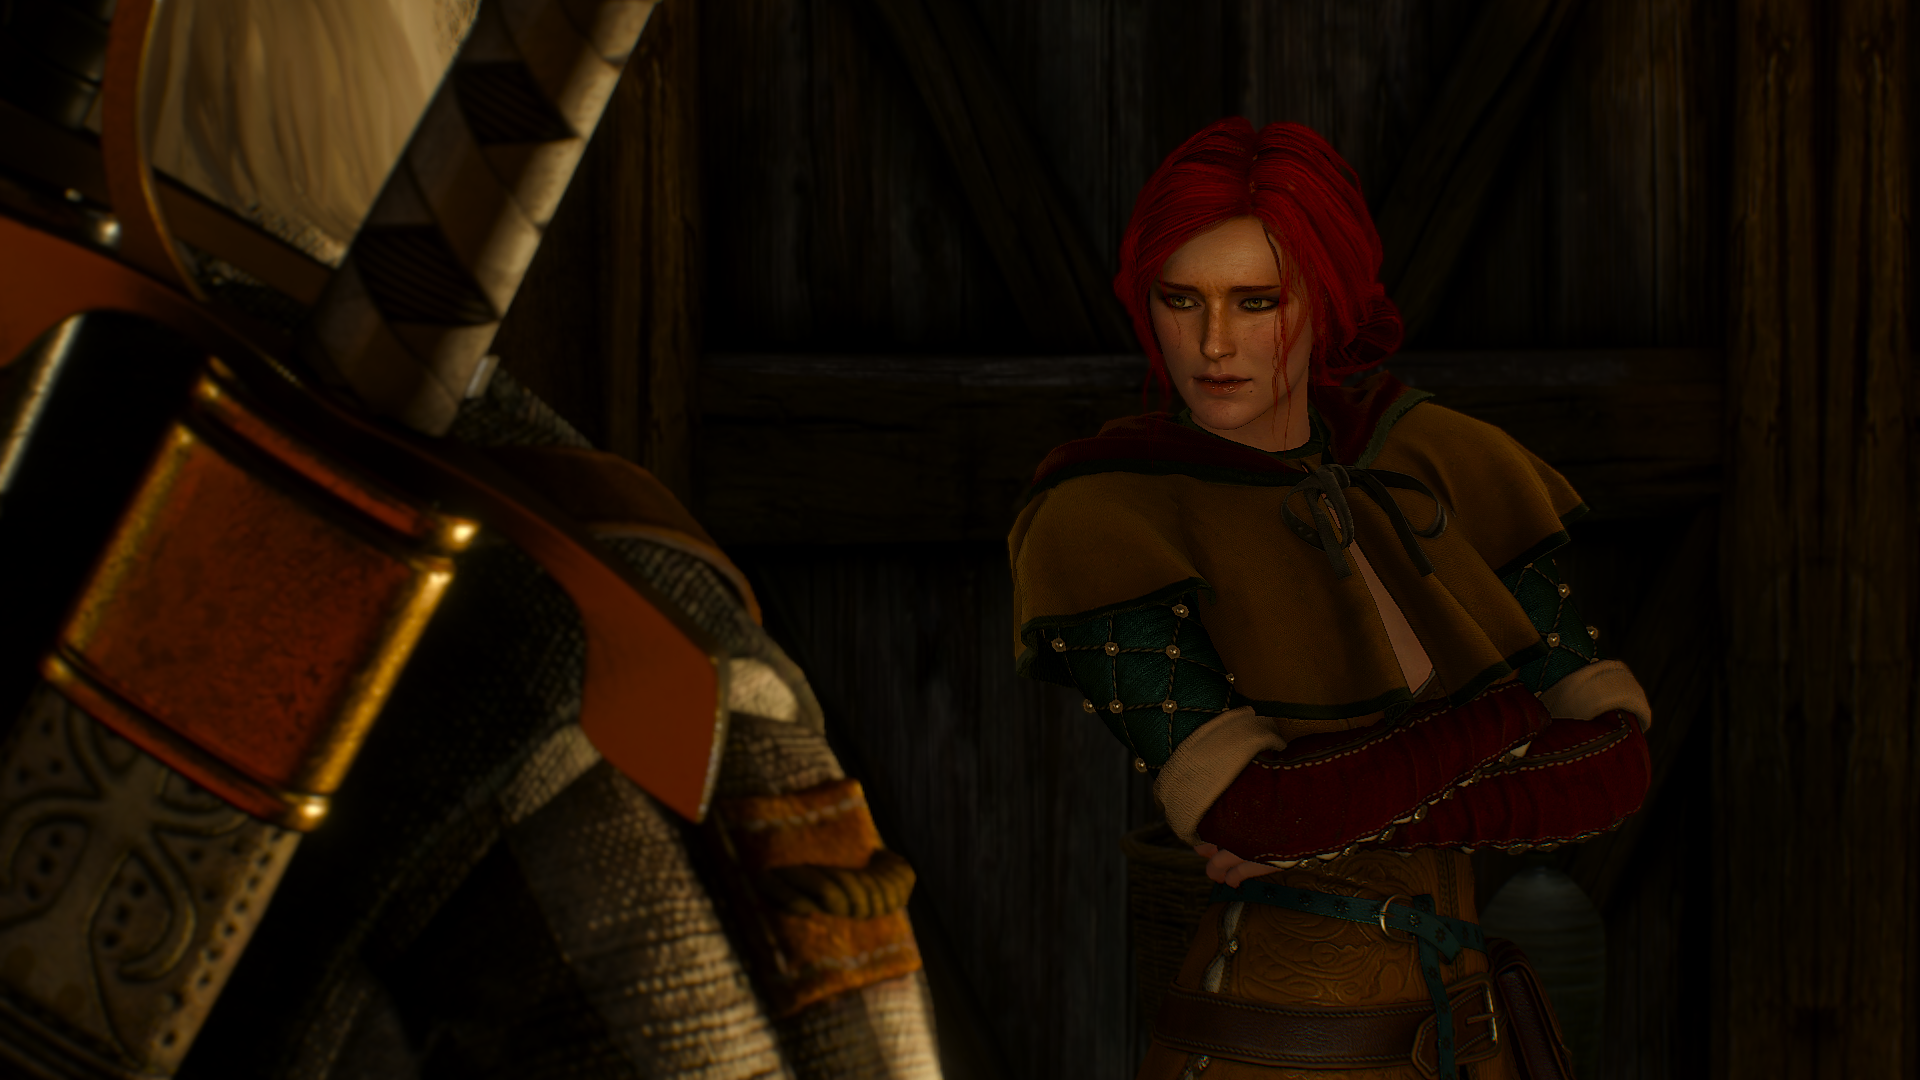 The Witcher 3 Wild Hunt Triss Merigold Geralt Of Rivia The Witcher Video Games 1920x1080